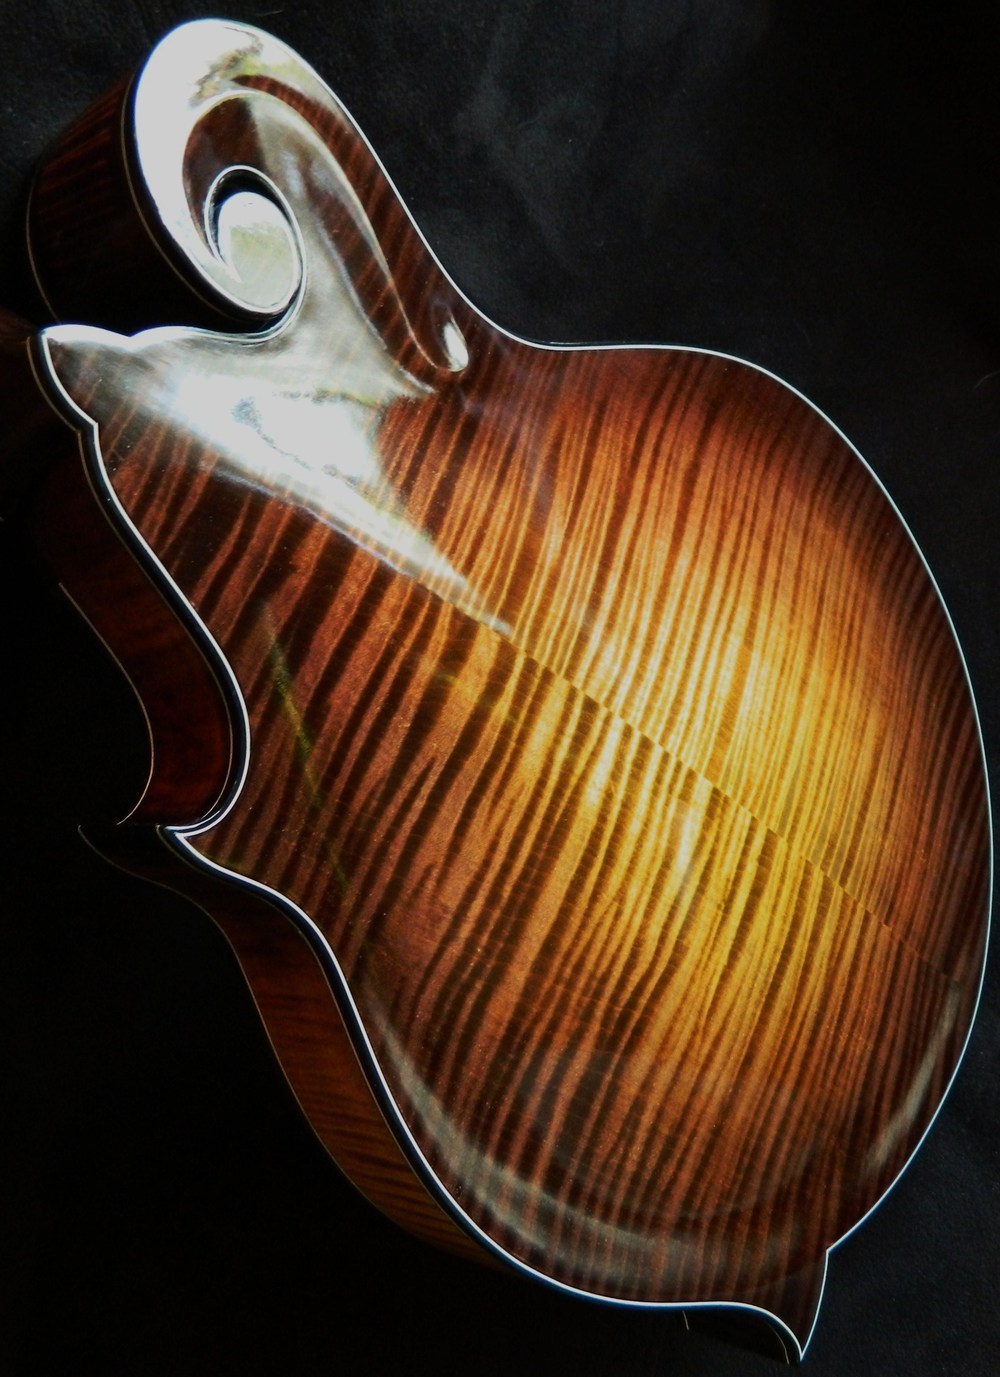 F8 mandolin, photo by Steve Sorensen.